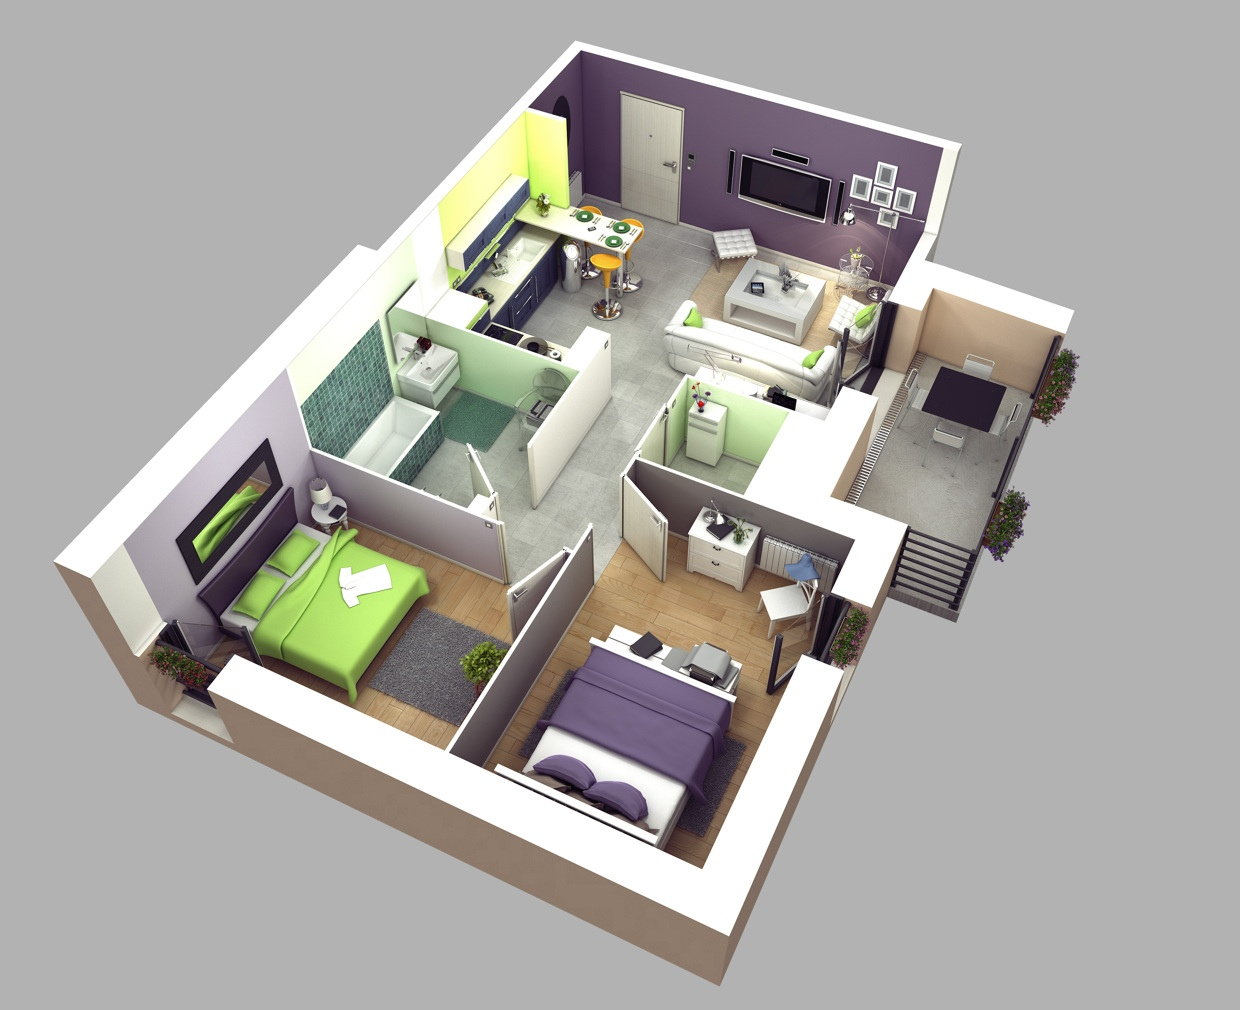 Home Design Ideas 3d: THOUGHTSKOTO